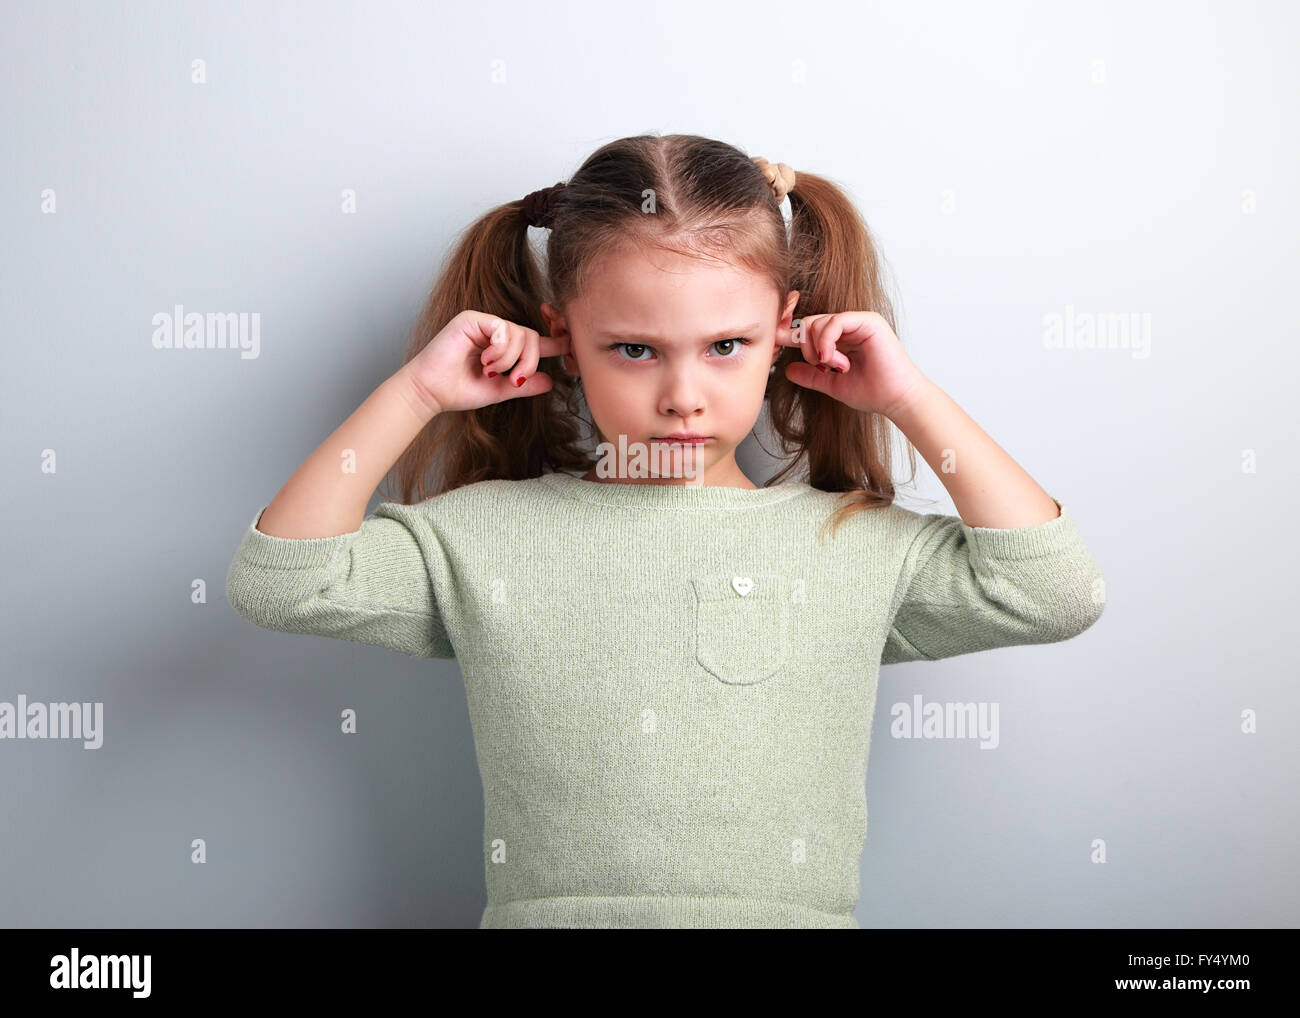 Angry unhappy kid girl covered ears the fingers and gesturing that not want to listen on blue background with empty - Stock Image